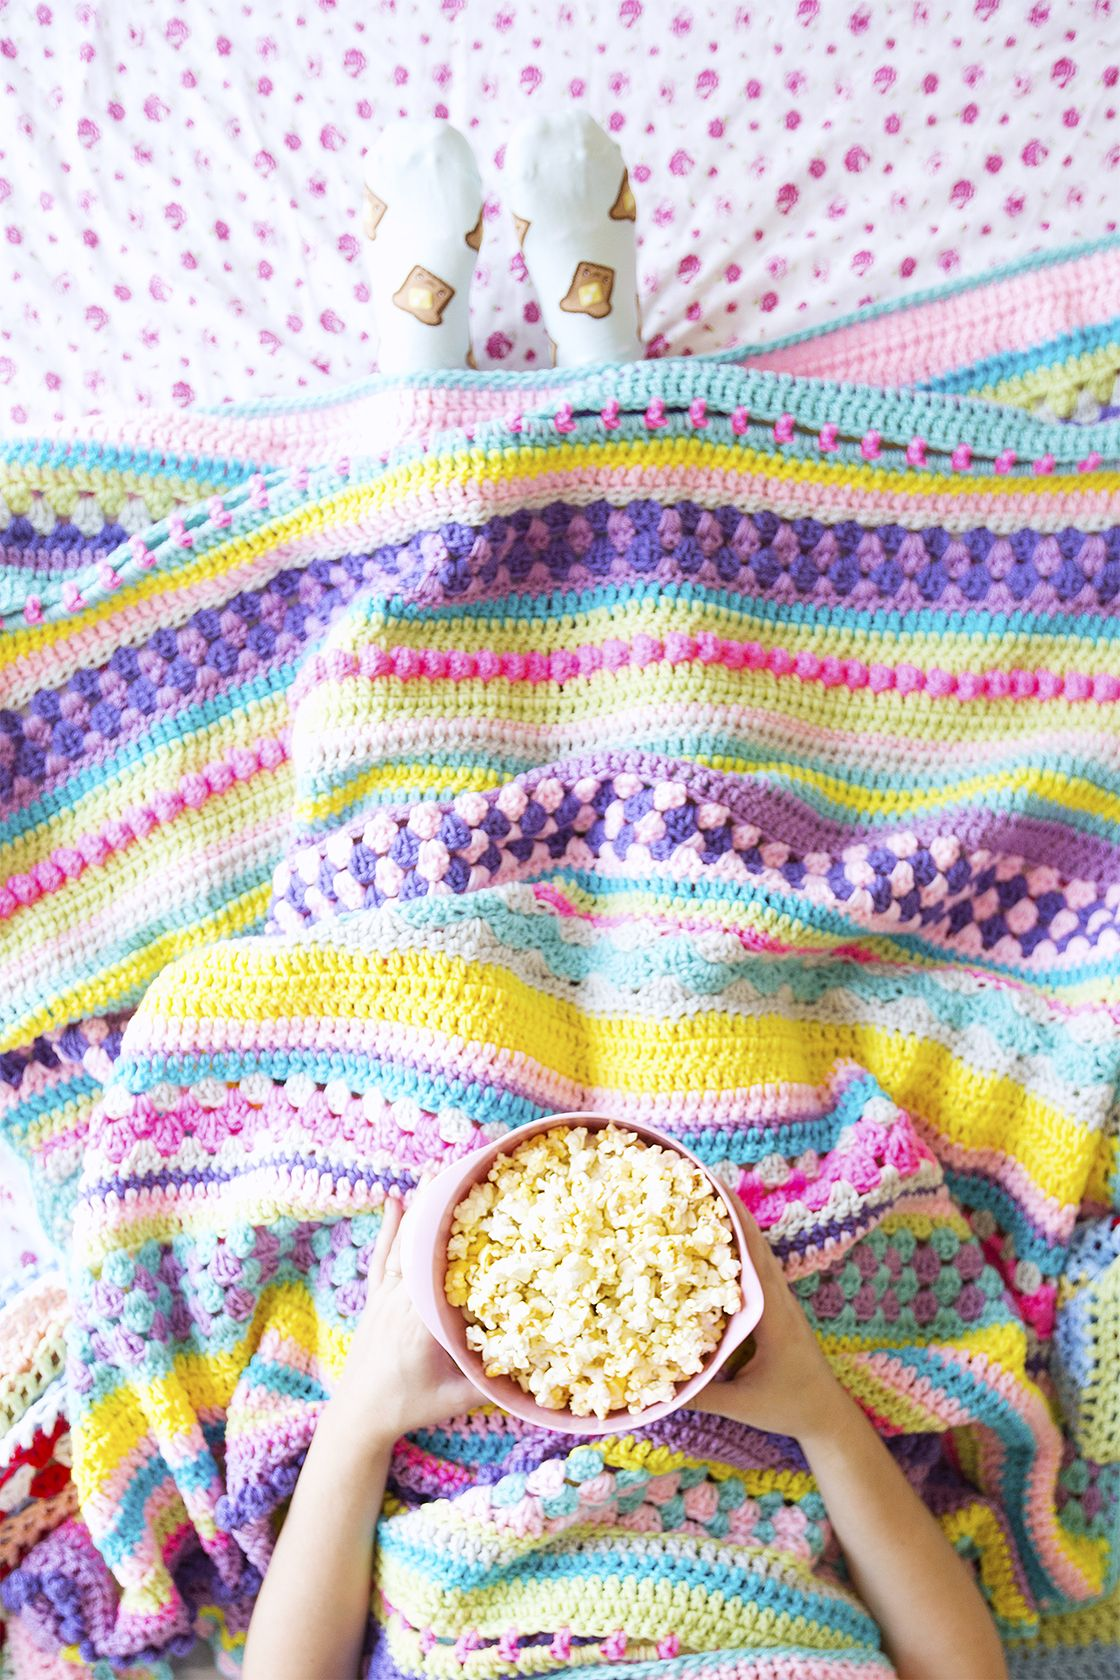 Colorful Throw Blankets Cool Popcorn And A Movie With A Colorful Throw Blanket  #1 Crochet Inspiration Design